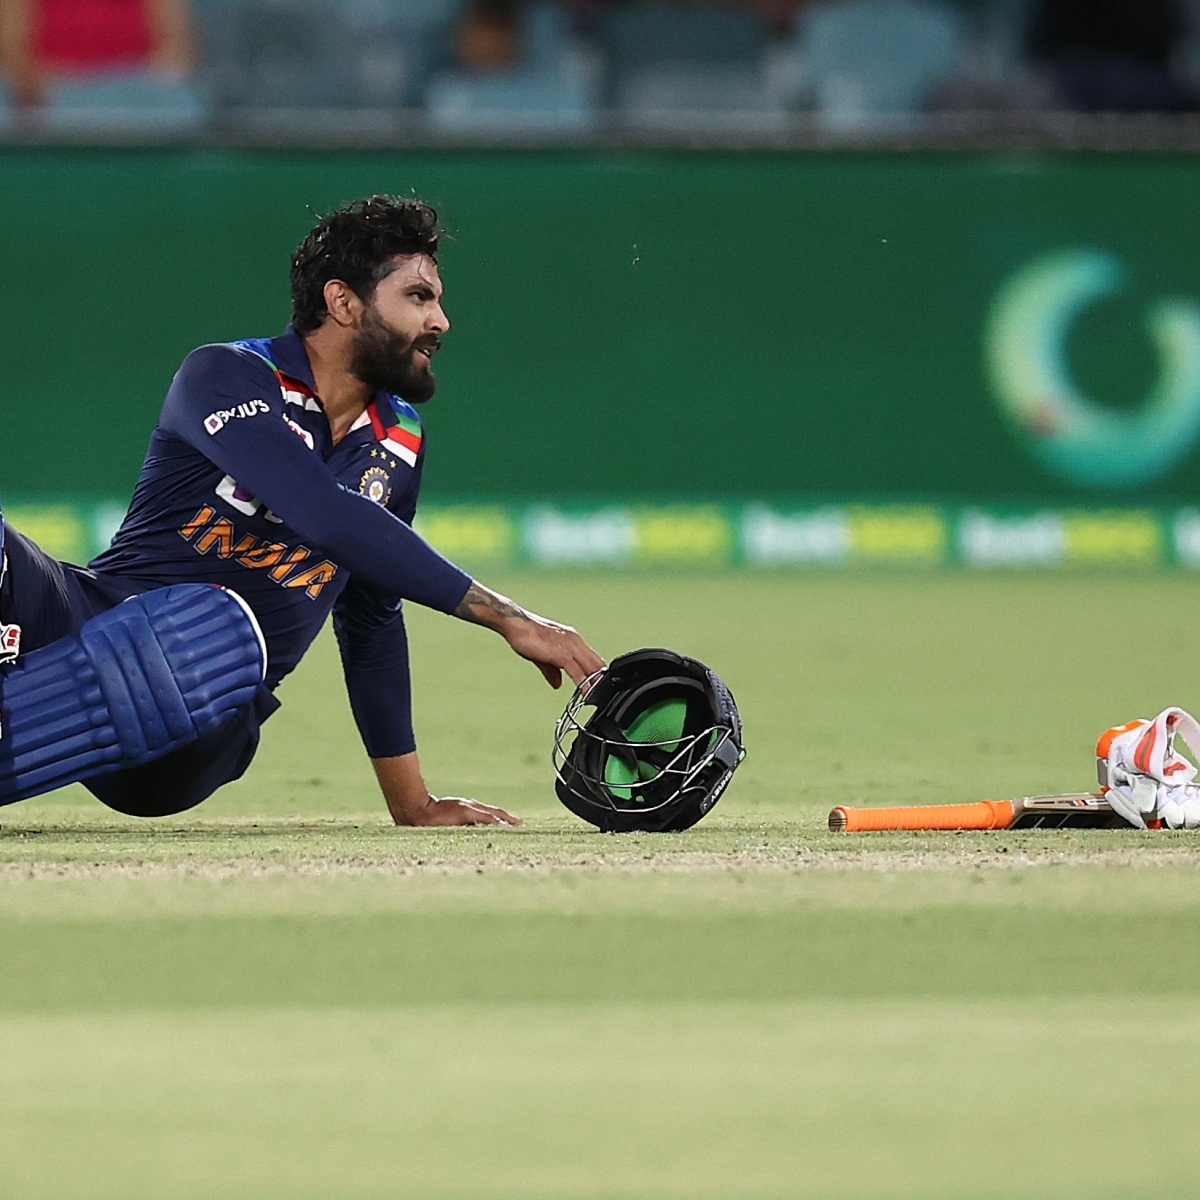 Ind vs Aus 1st T20I: Yuzvendra Chahal brought in as concussion substitute for Ravindra Jadeja; Justin Langer unhappy with decision